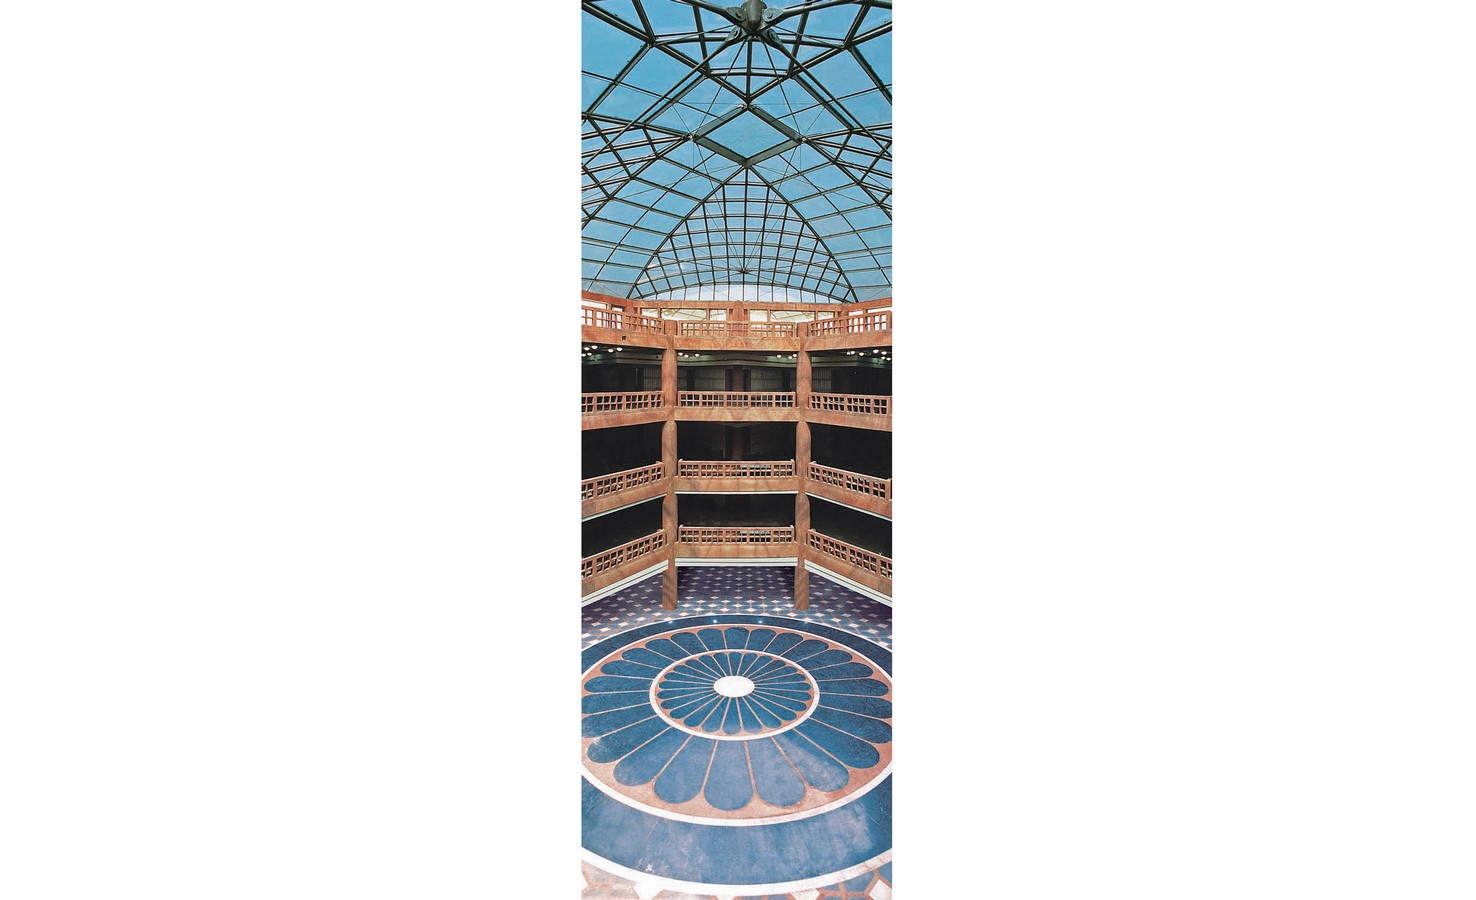 Parliament Library Building by Raj Rewal: Enlightenment translated into architecture - Sheet5